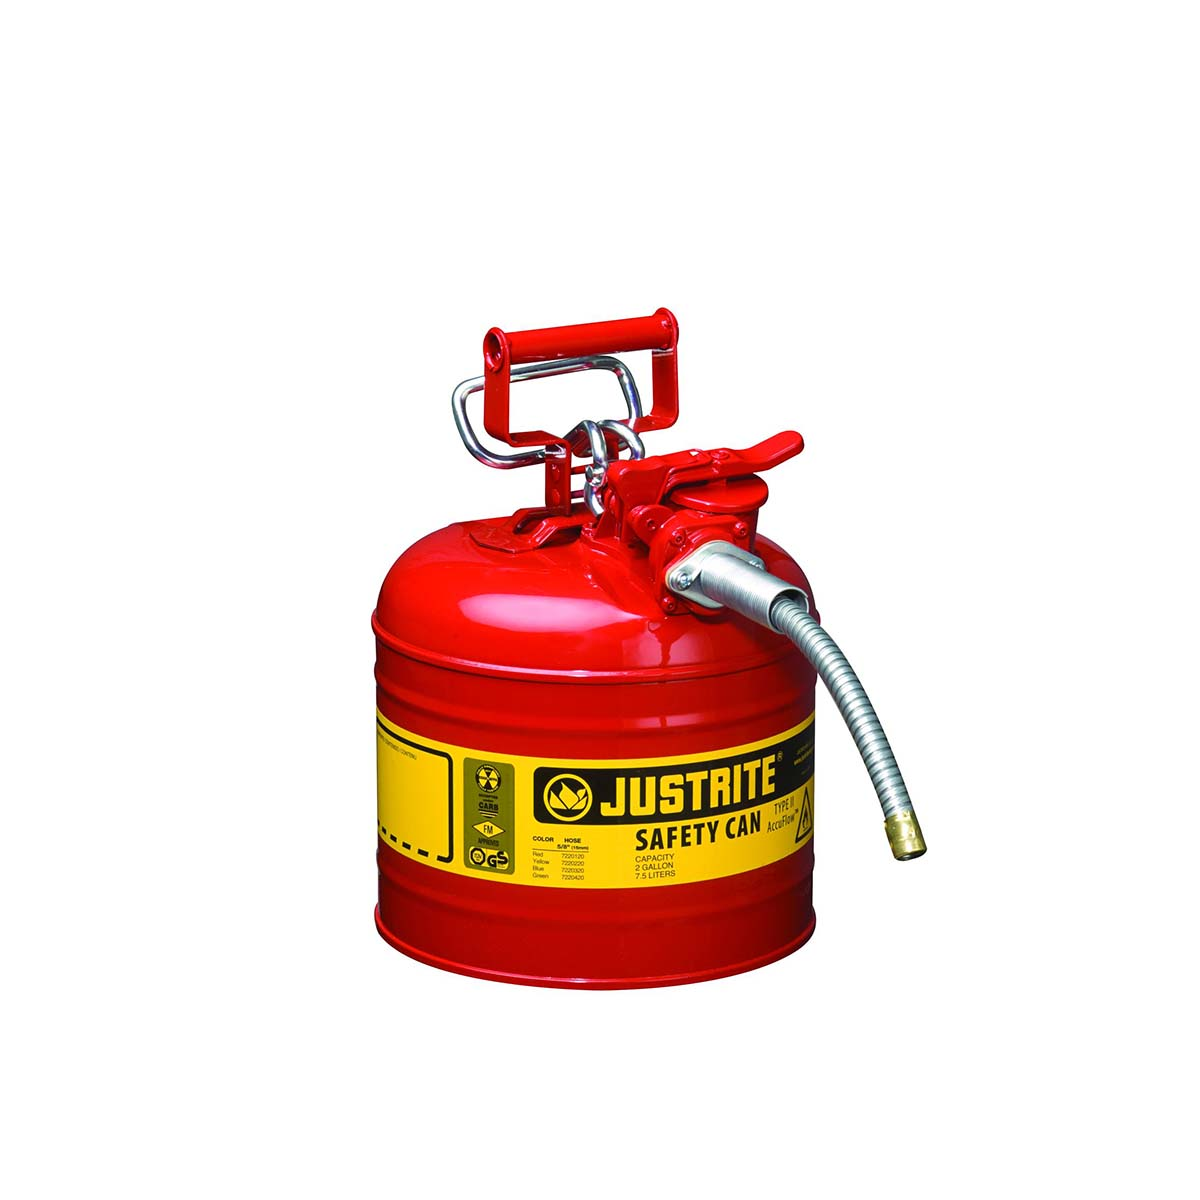 "Type II AccuFlowâ""¢ Steel Safety Can for flammables, 2 gal., S/S flame arrester, 5/8"" metal hose, Red."